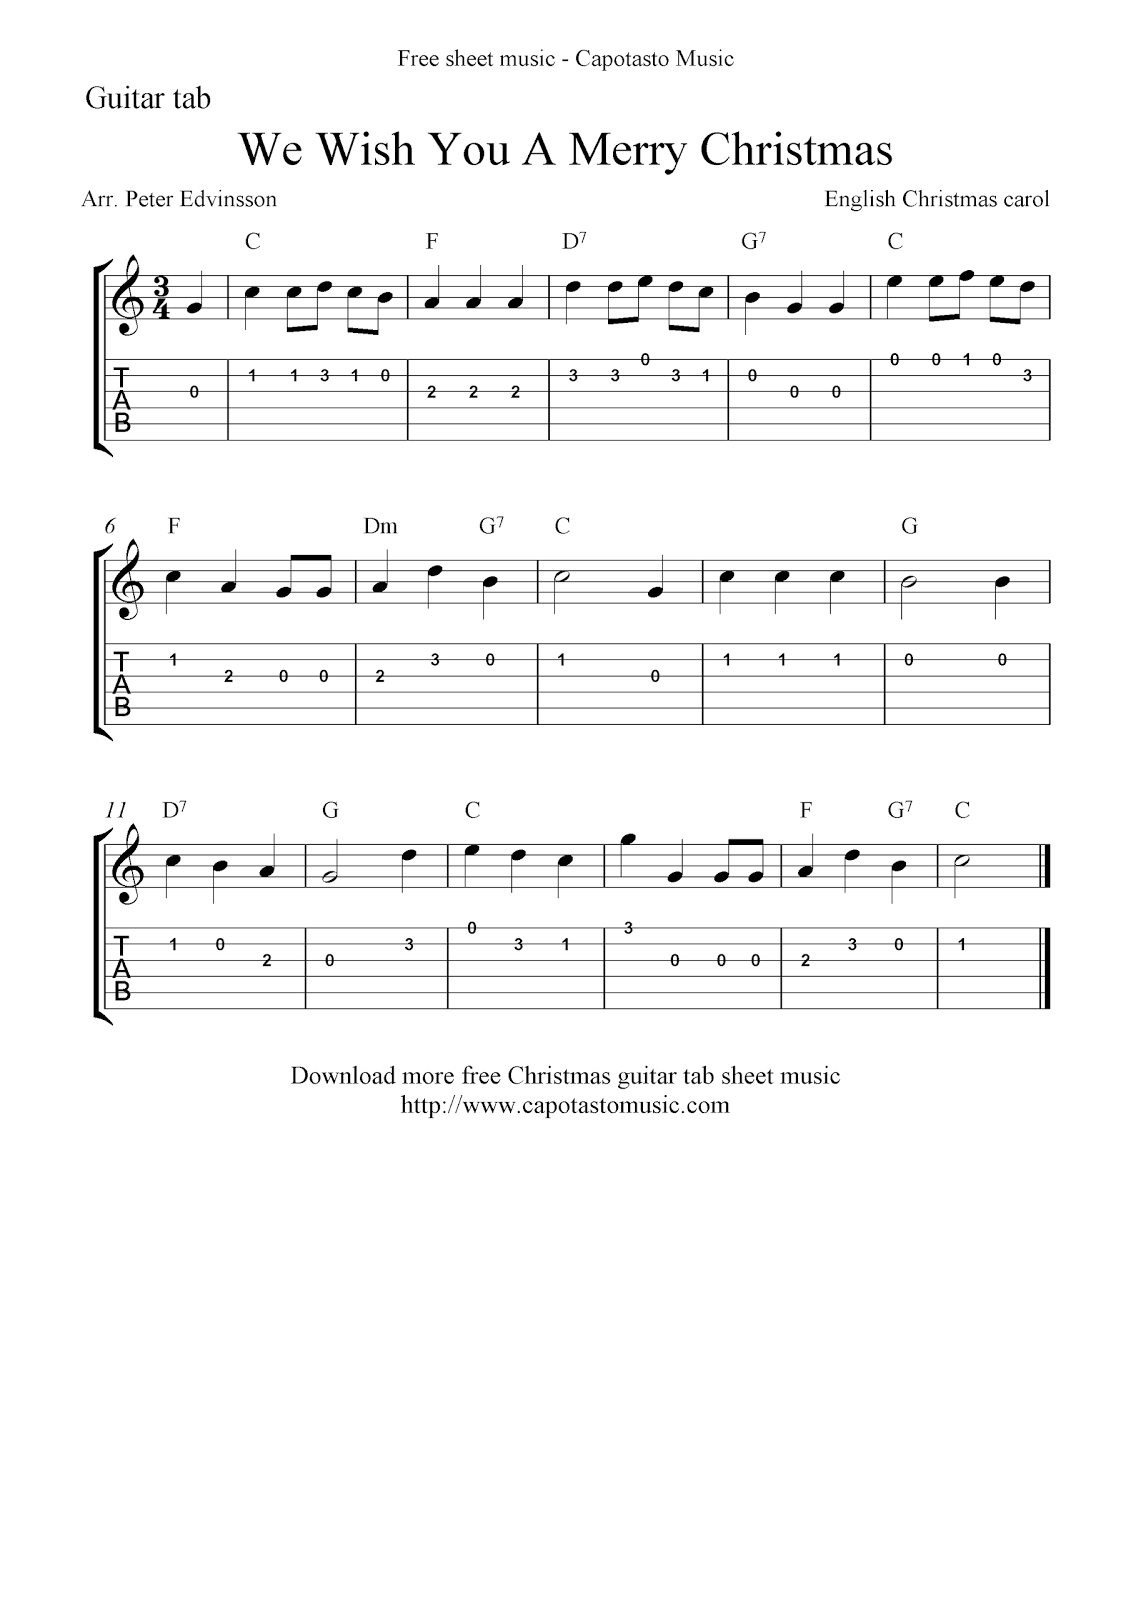 Ozipto music sheets chords tablature and song lyrics ukulele chords we wish you a merry christmas hexwebz Image collections